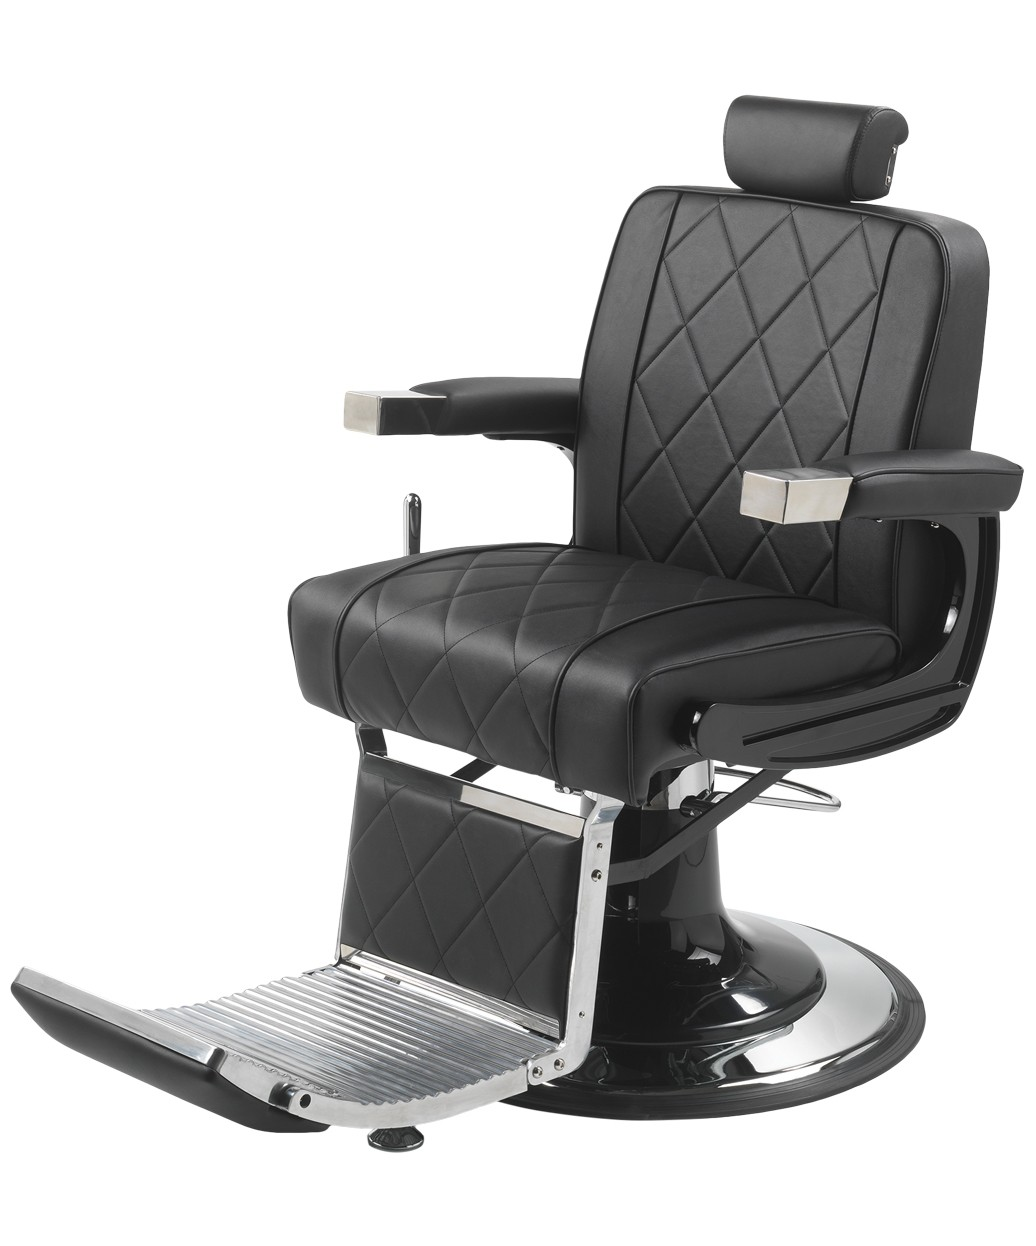 Pleasing Belvedere Rocky Barber Chair Onthecornerstone Fun Painted Chair Ideas Images Onthecornerstoneorg